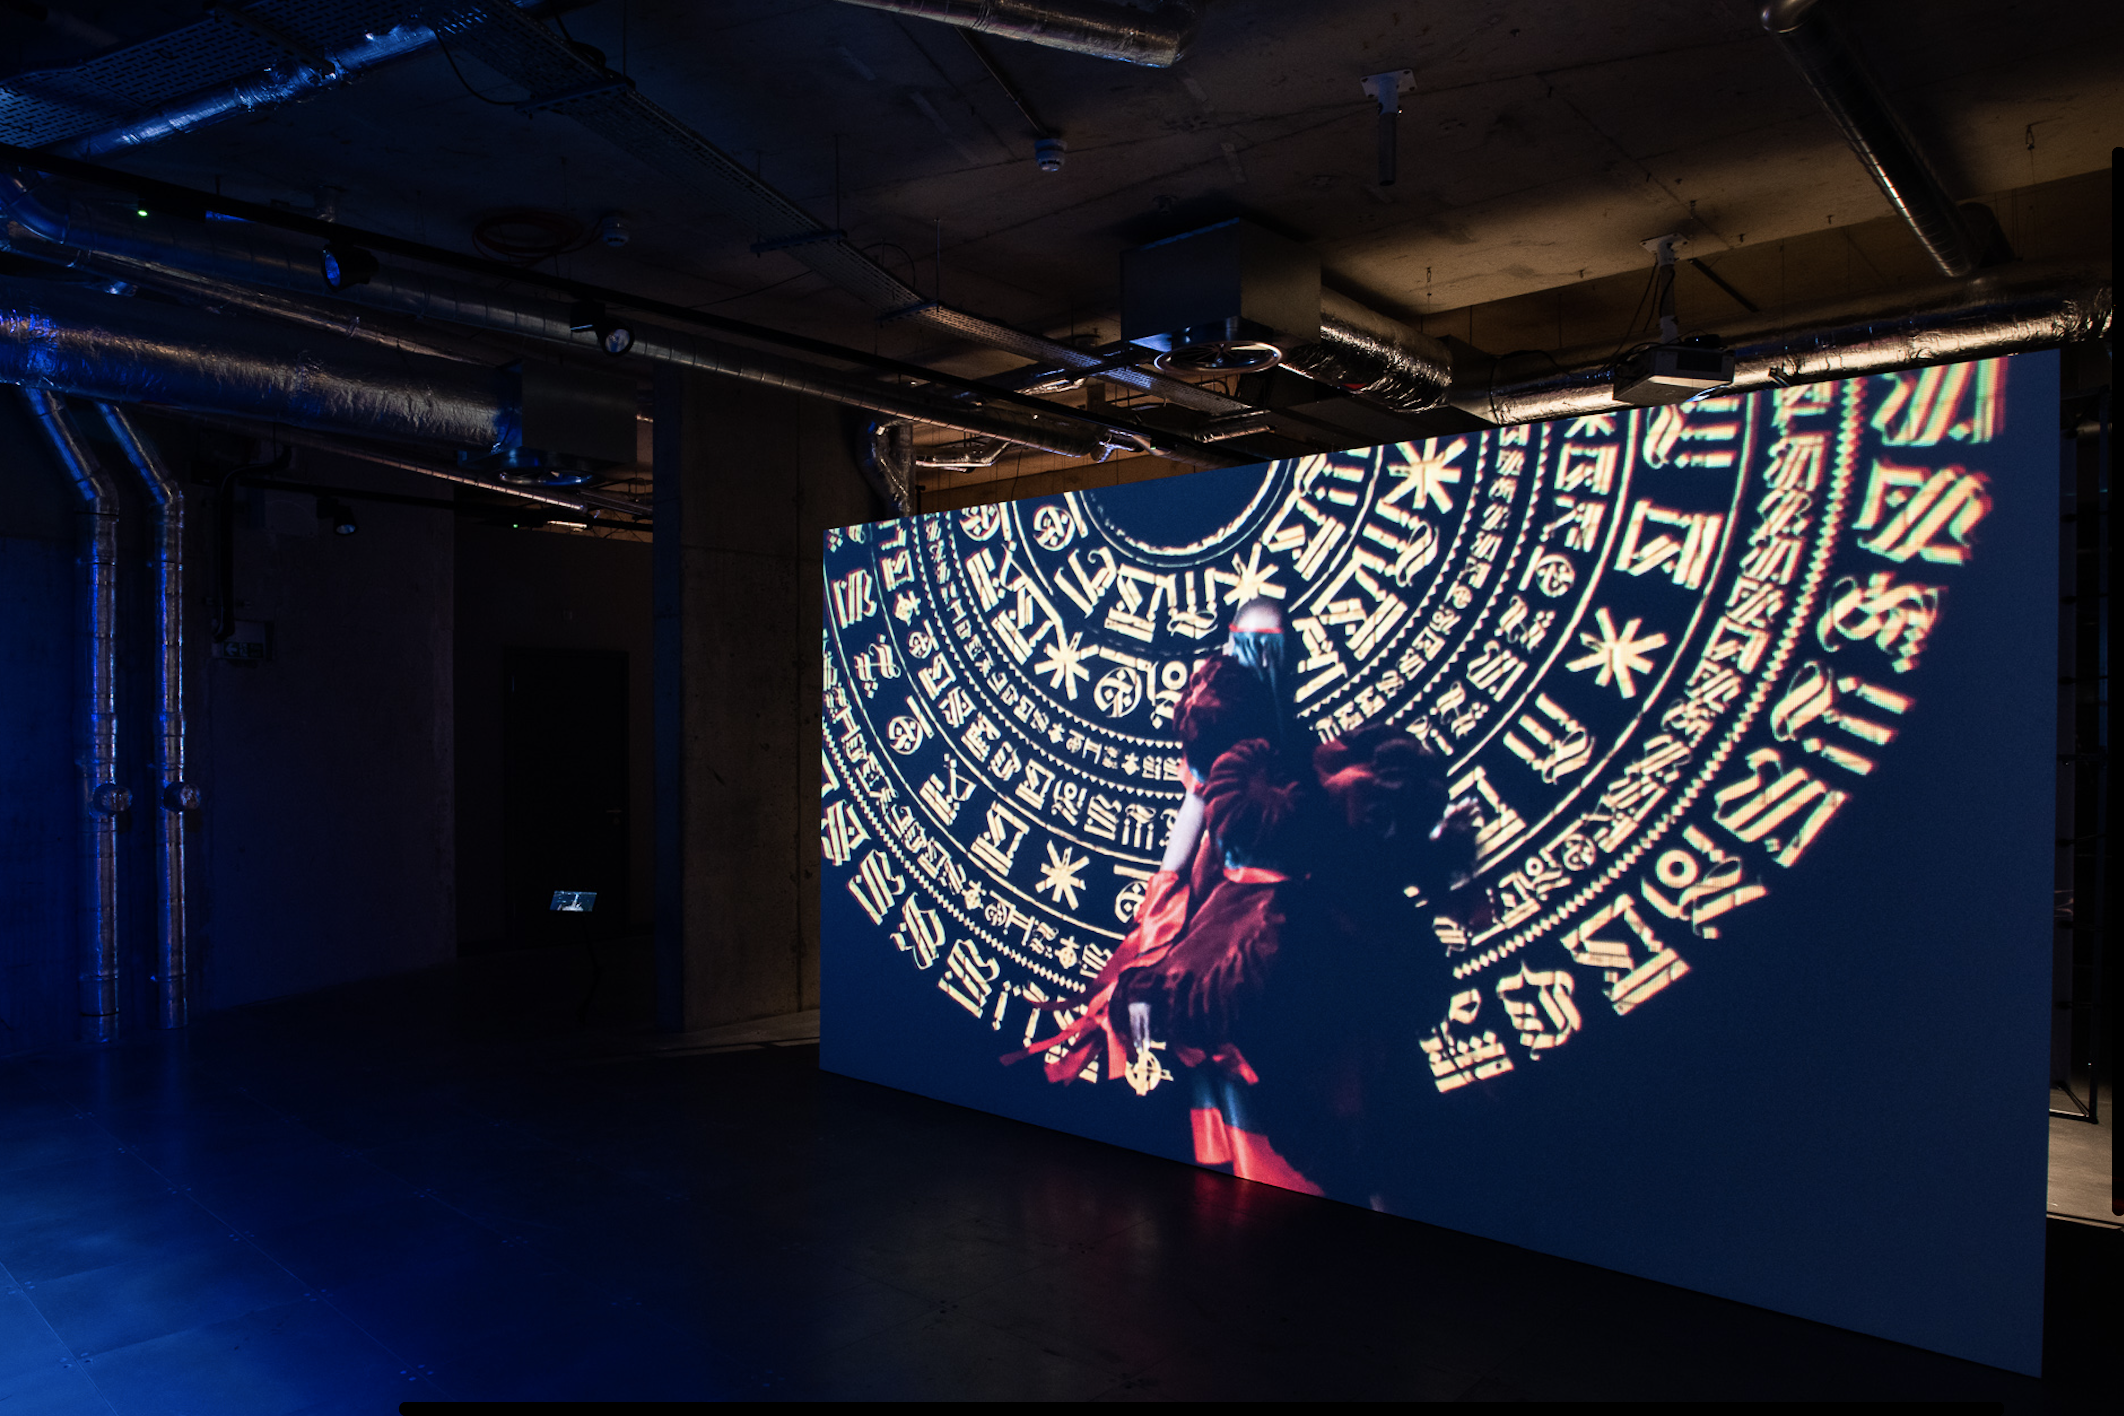 Installation view: 'Powerplay'. Photo by Max Colson, courtesy of arebyte Gallery.